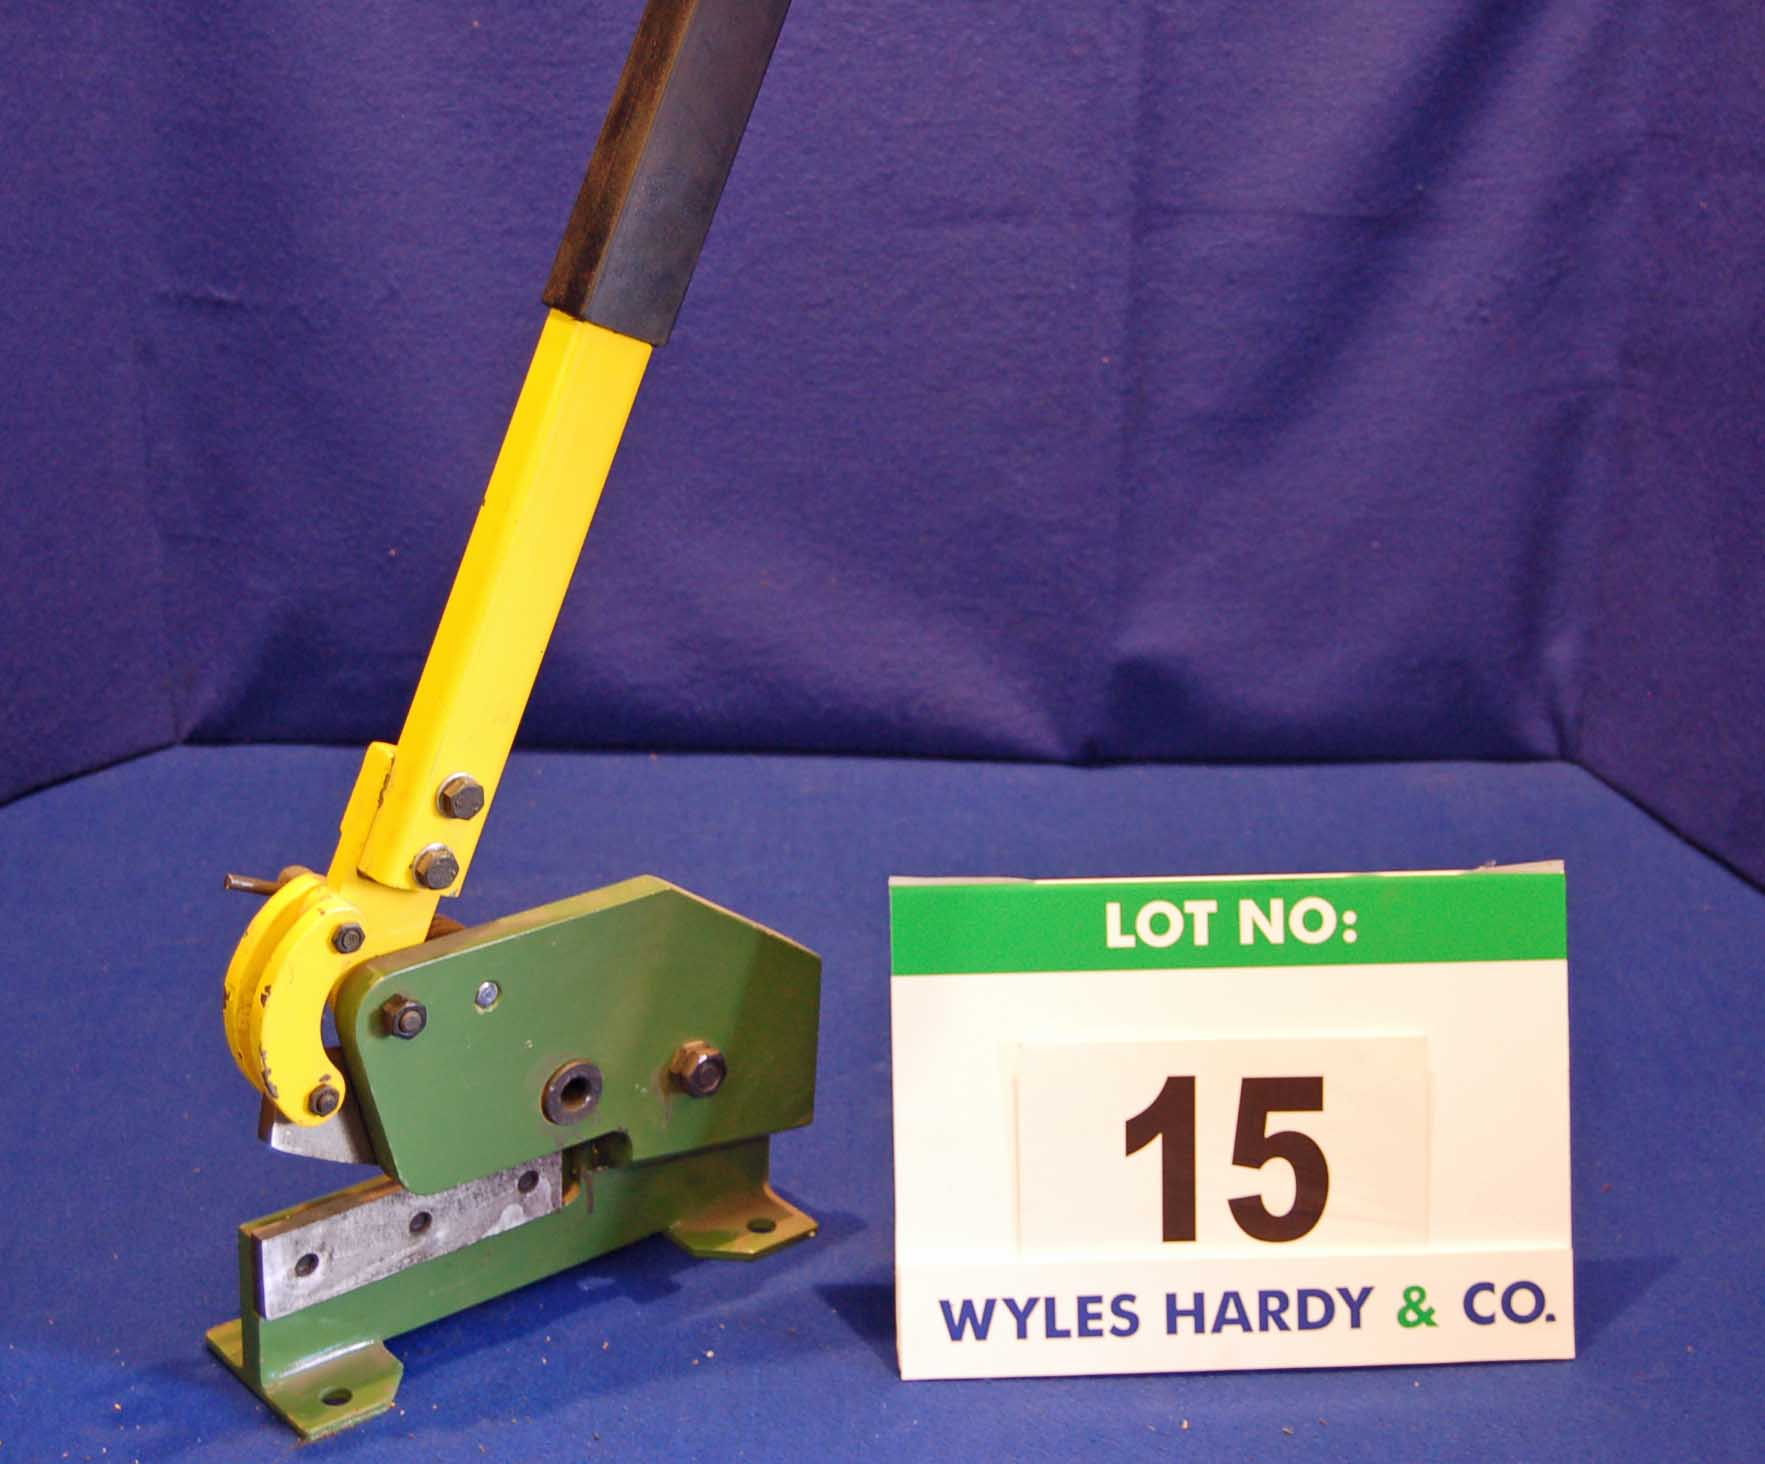 Lot 15 - WARCO Bench mountable Hand Shears